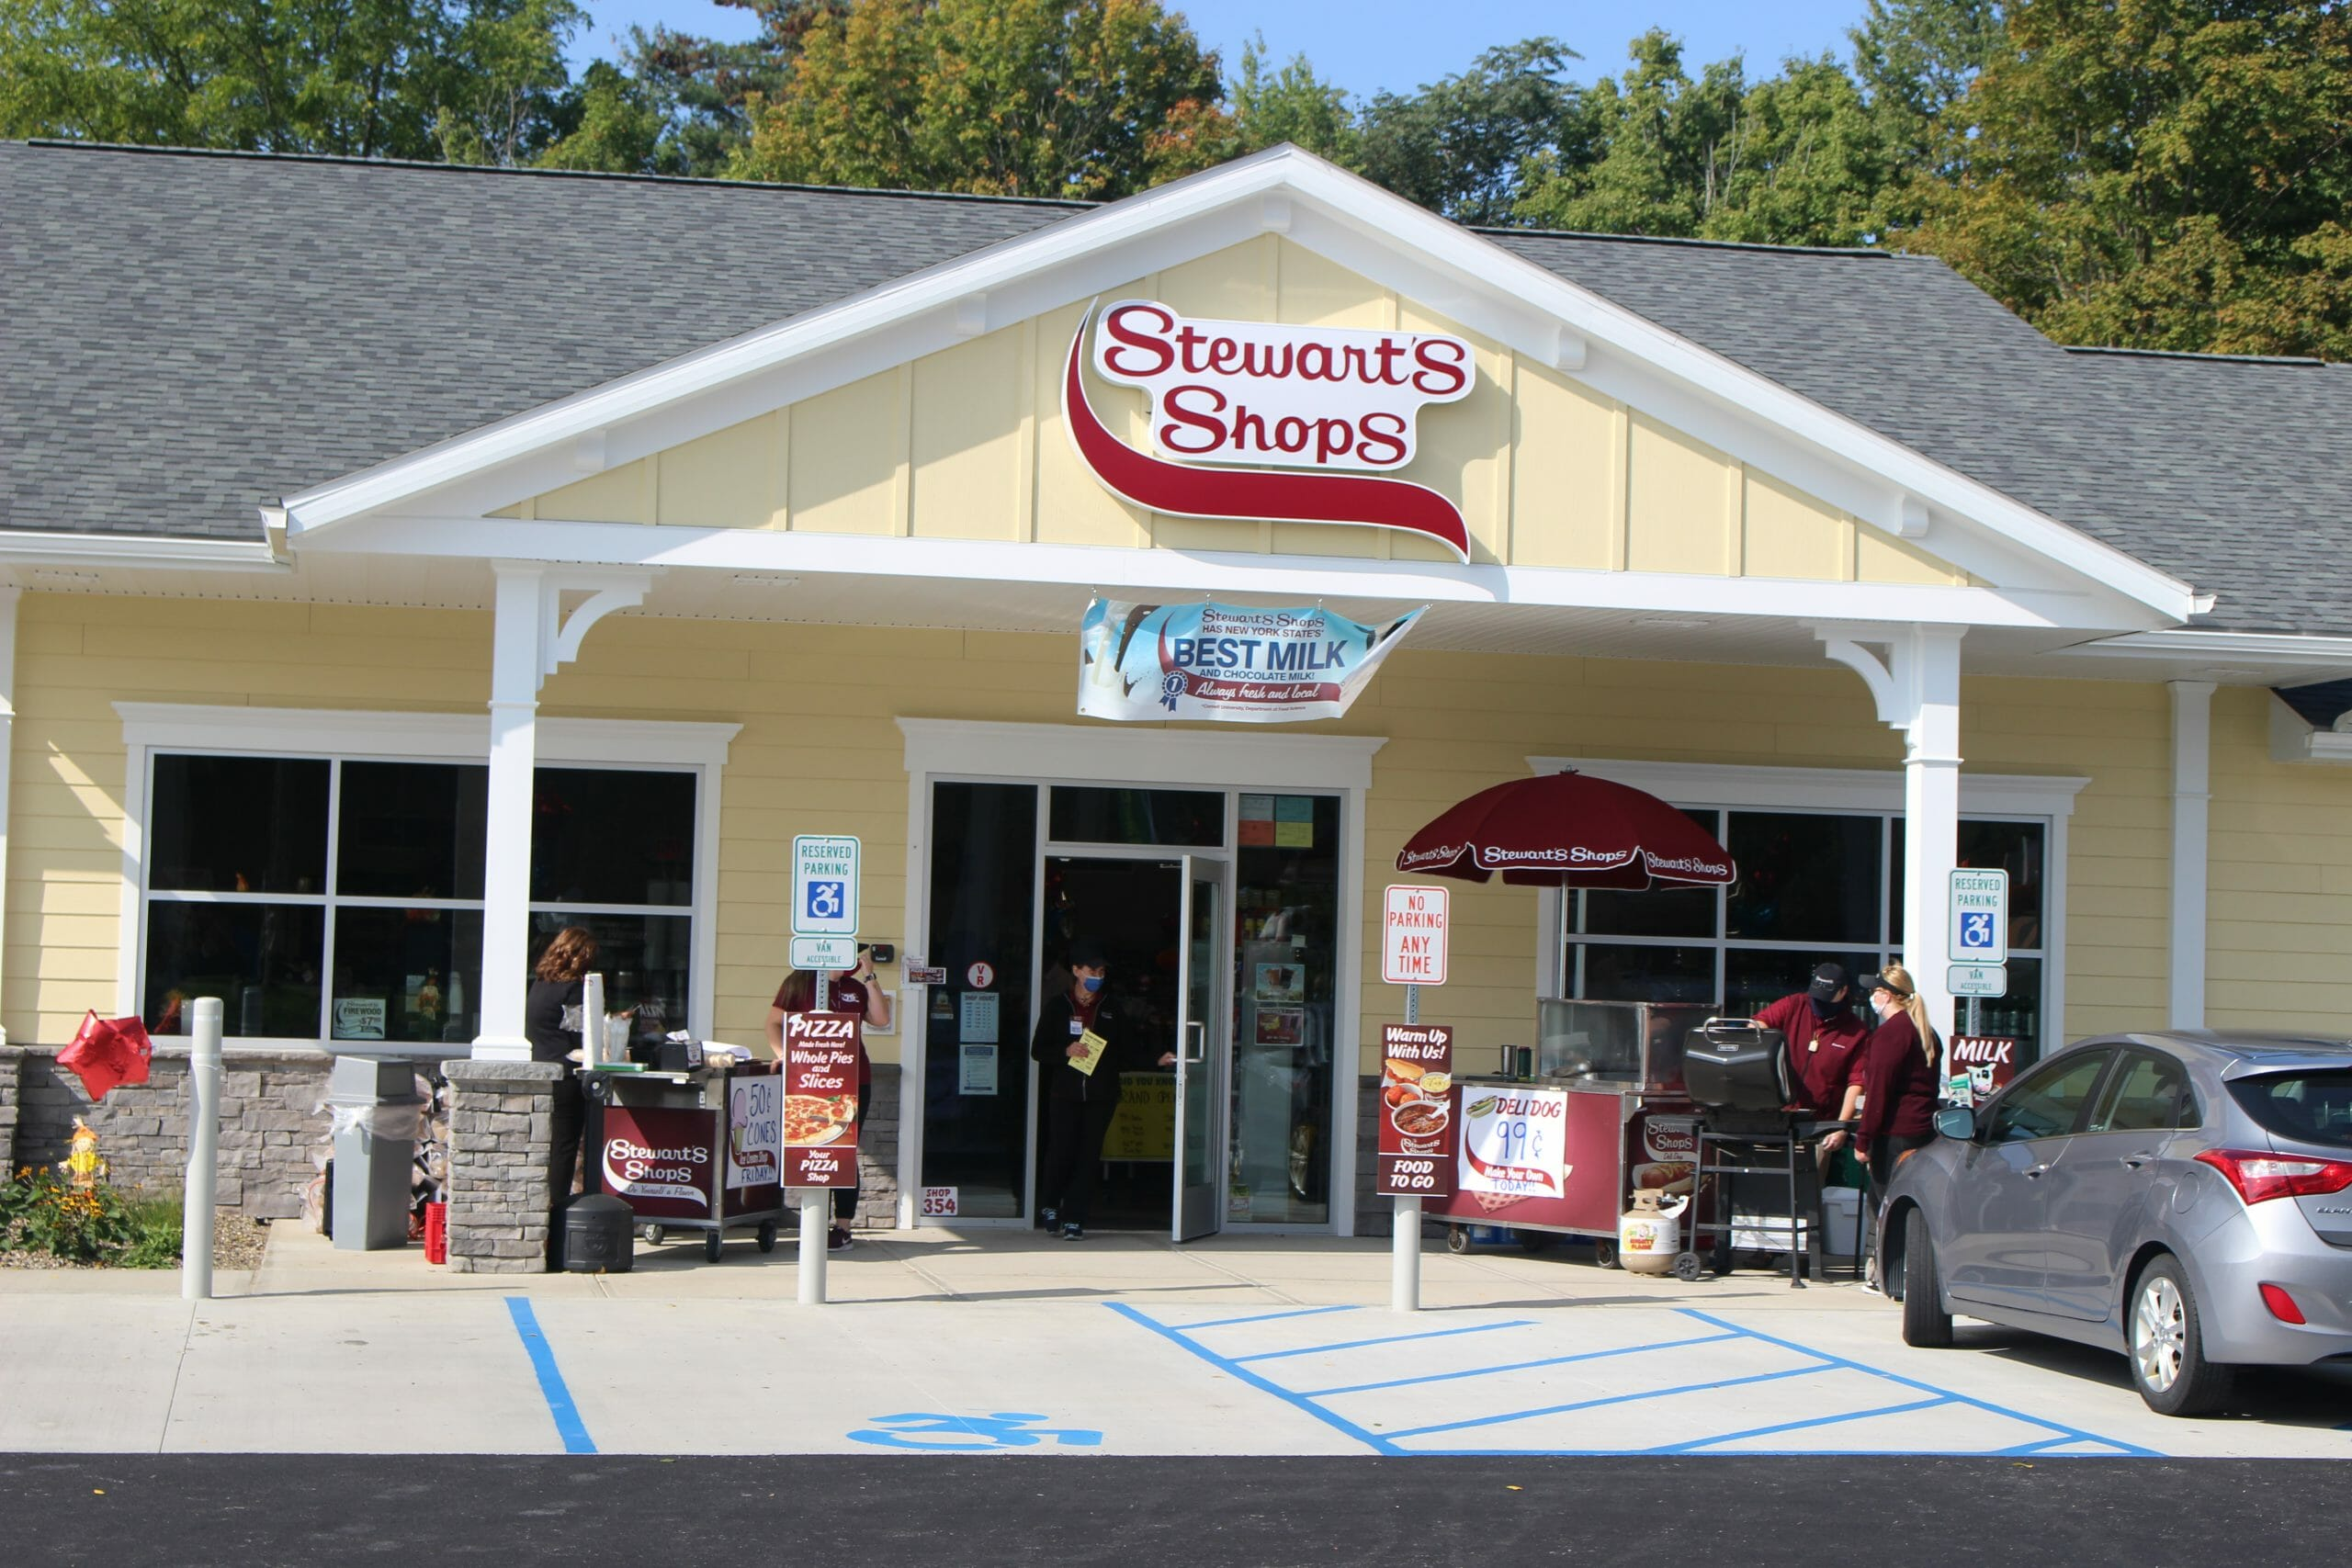 Stewarts shop with a best milk banner and two carts by the front door